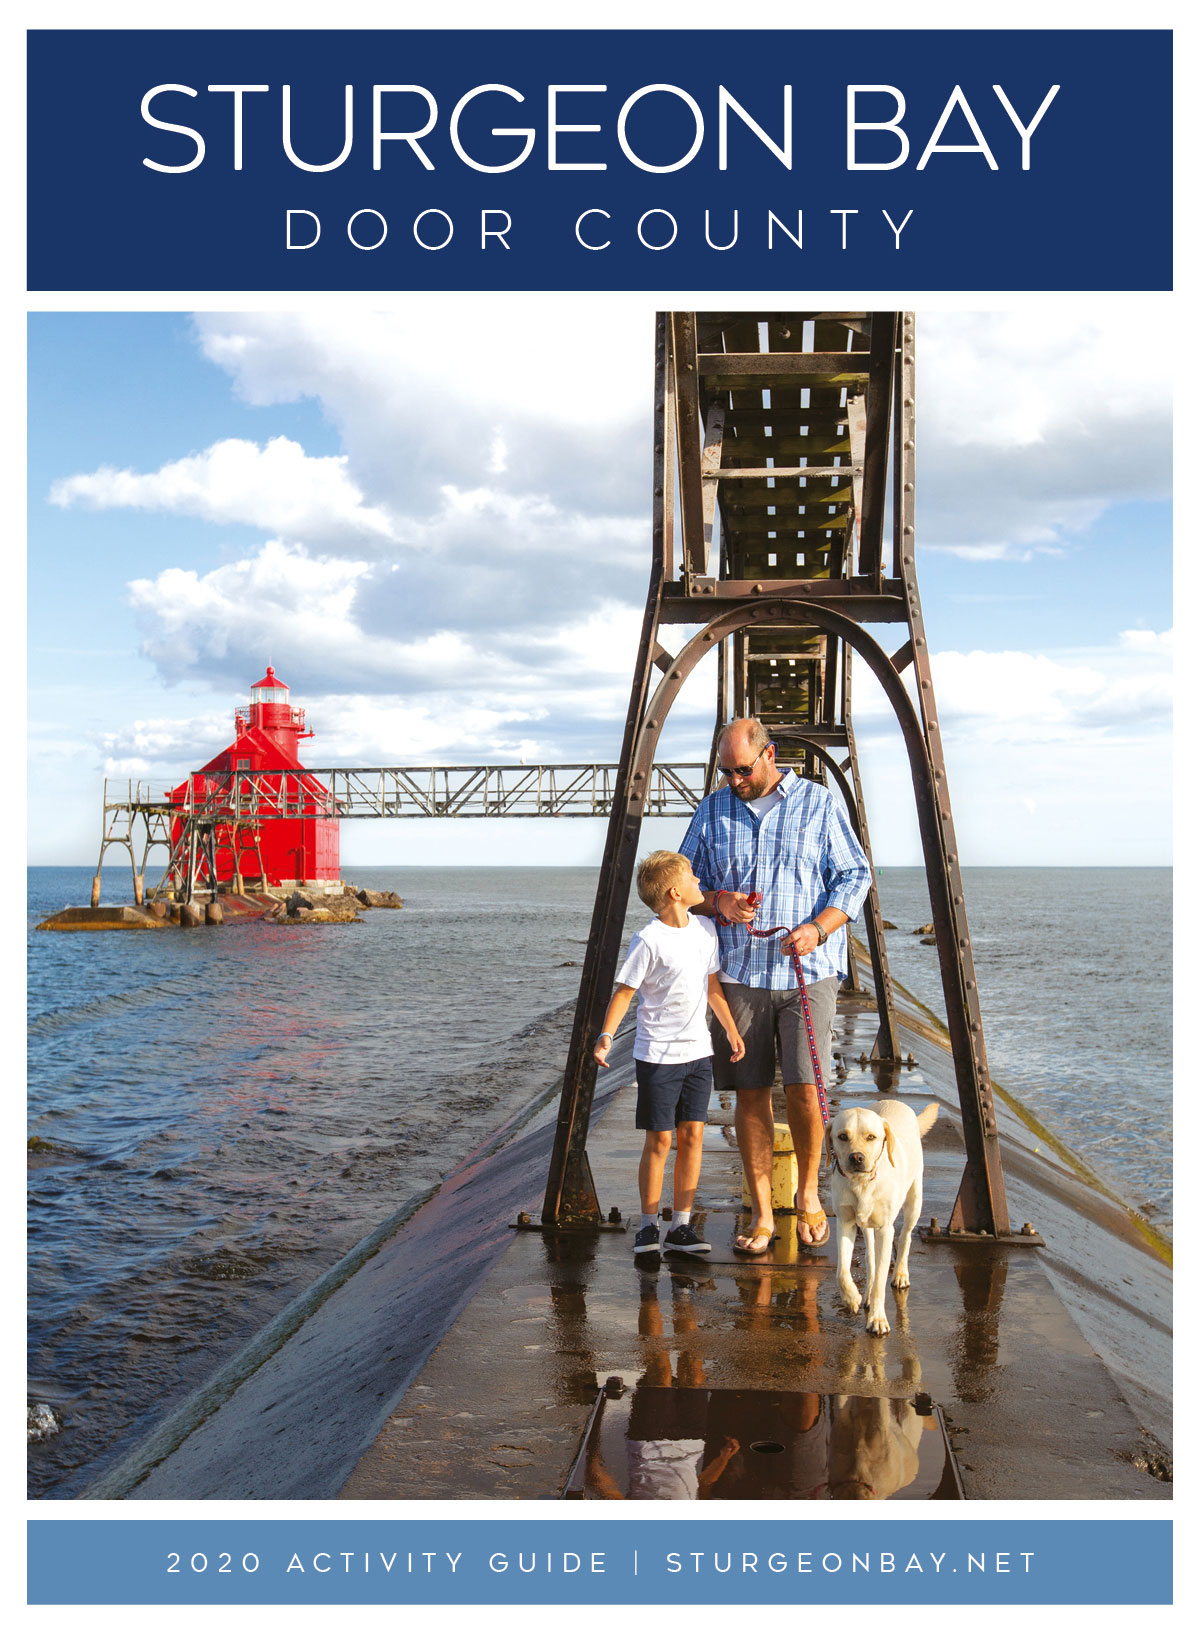 Cover of 2020 Sturgeon Bay Activity Guide, image of father and son on lighthouse pier